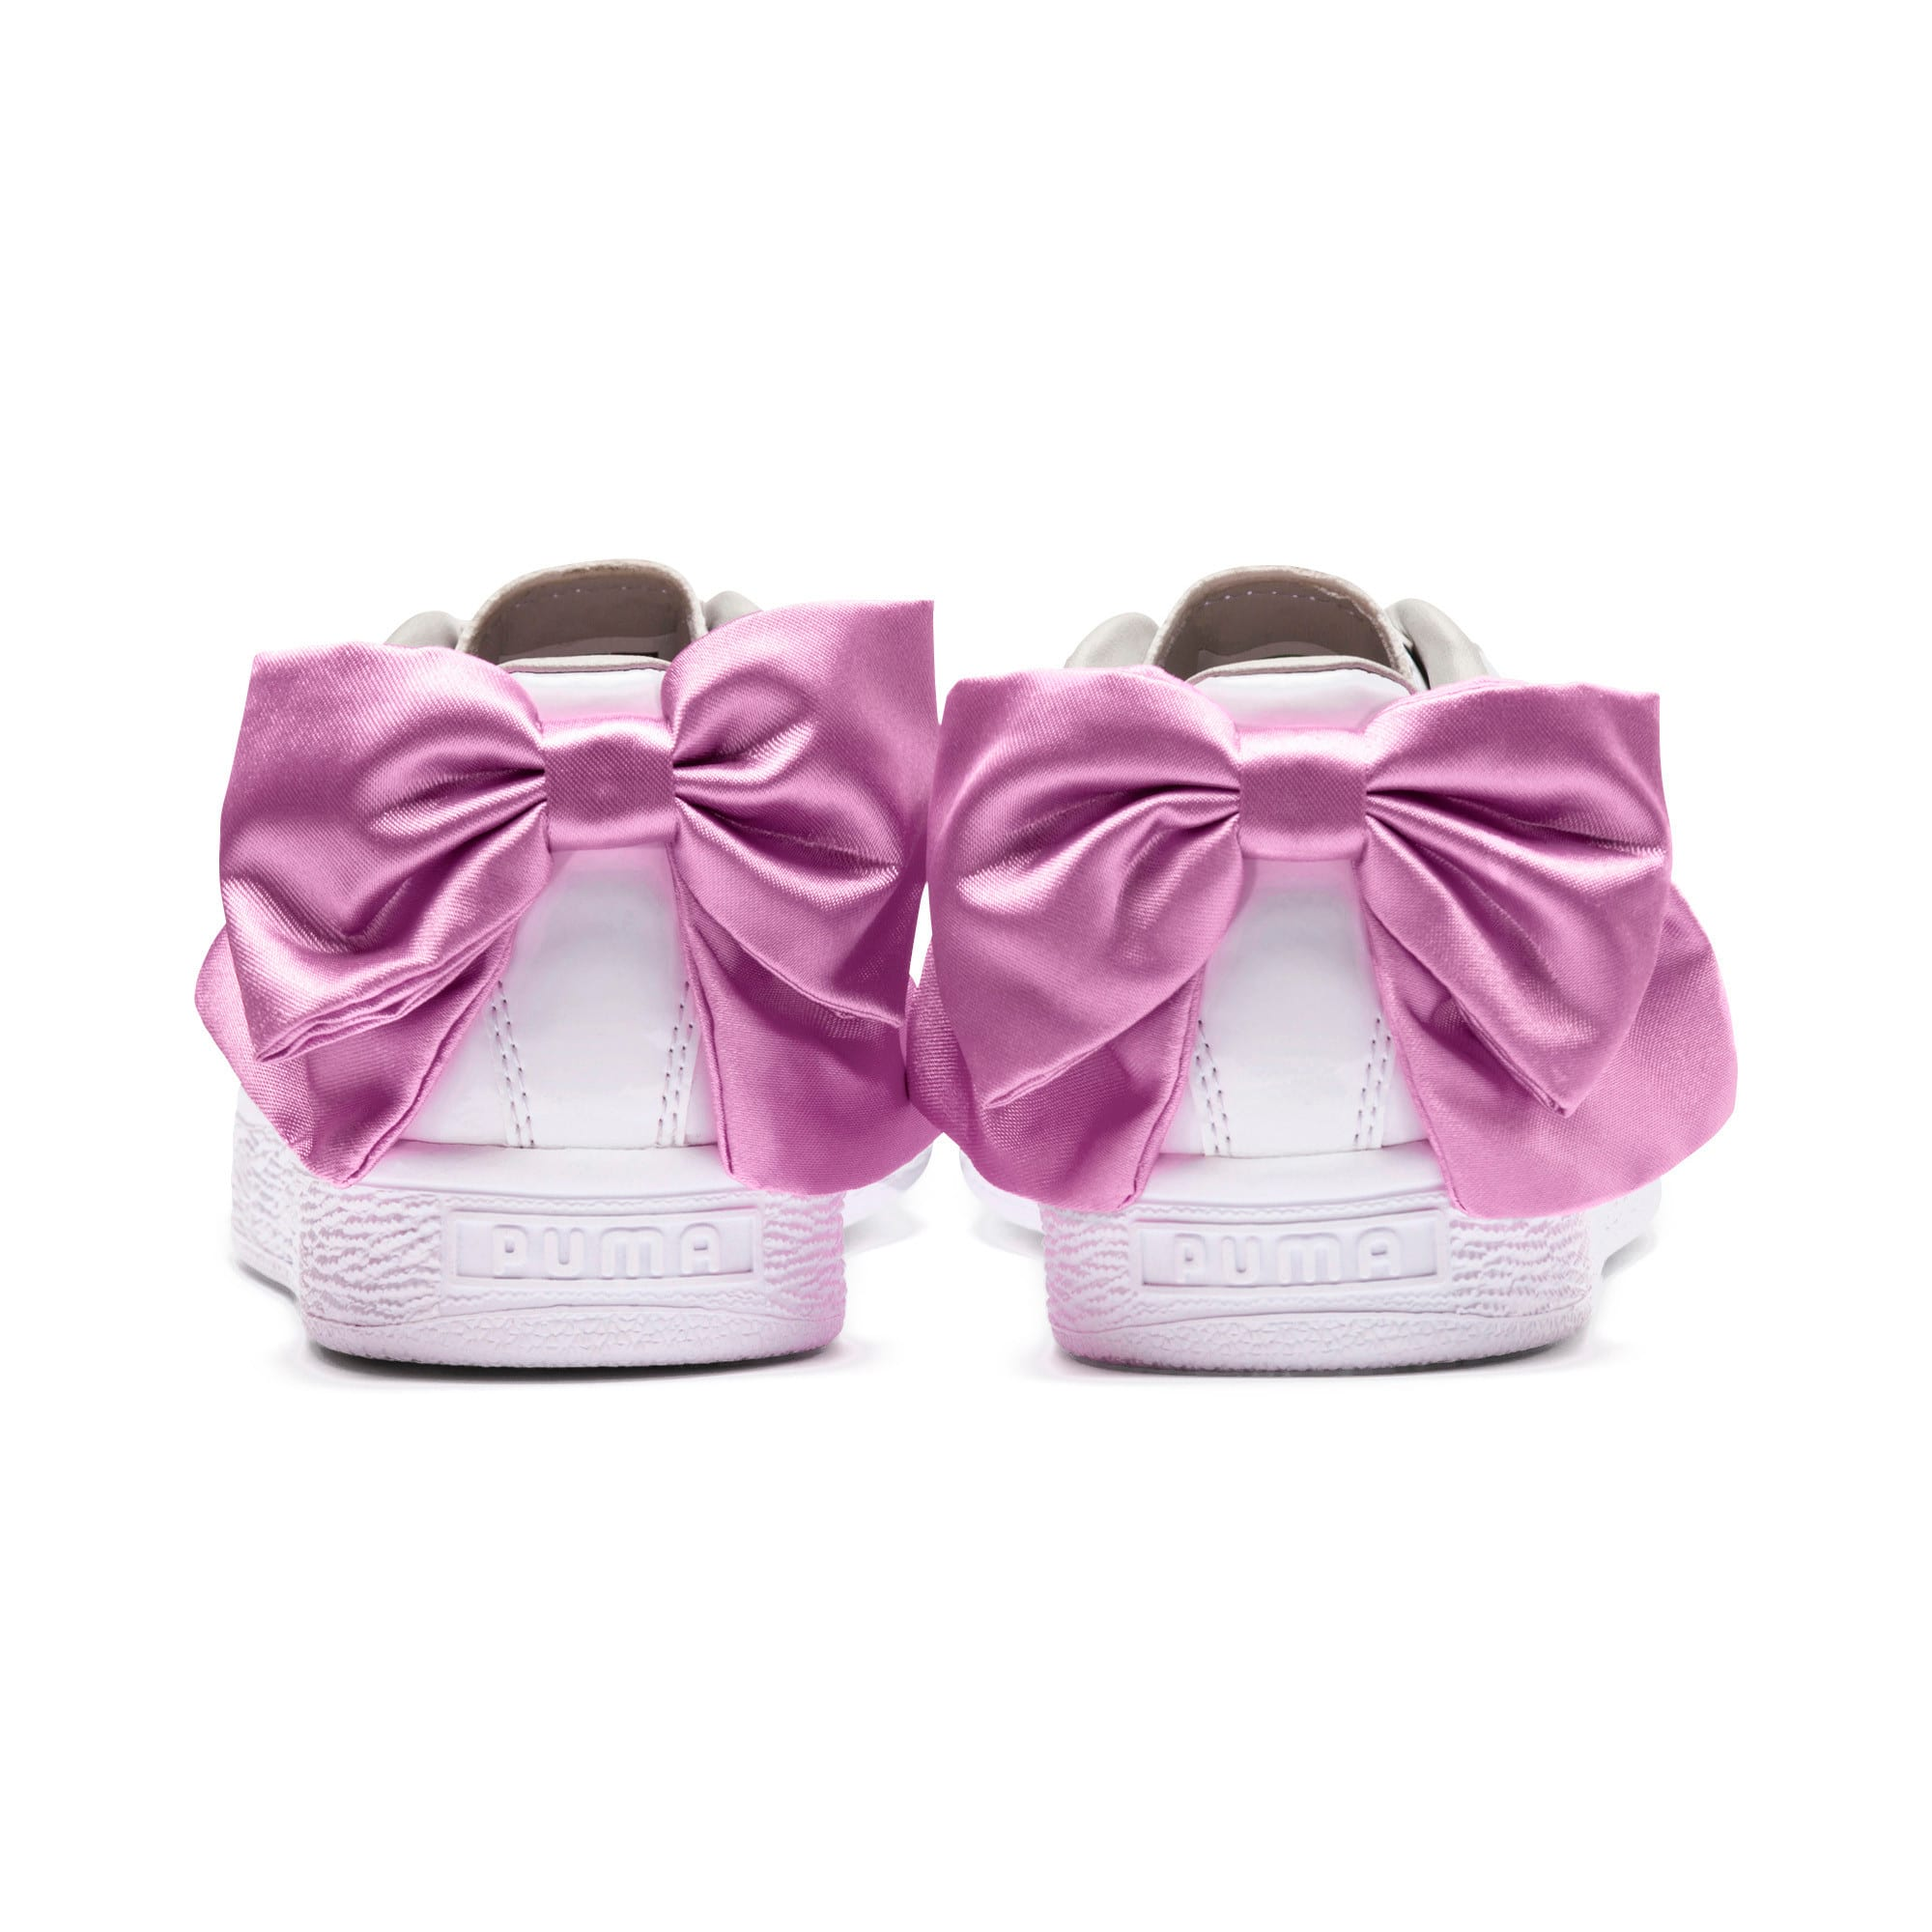 Thumbnail 3 of Basket Bow Patent Kids' Trainers, Puma White-Orchid-Gray, medium-IND